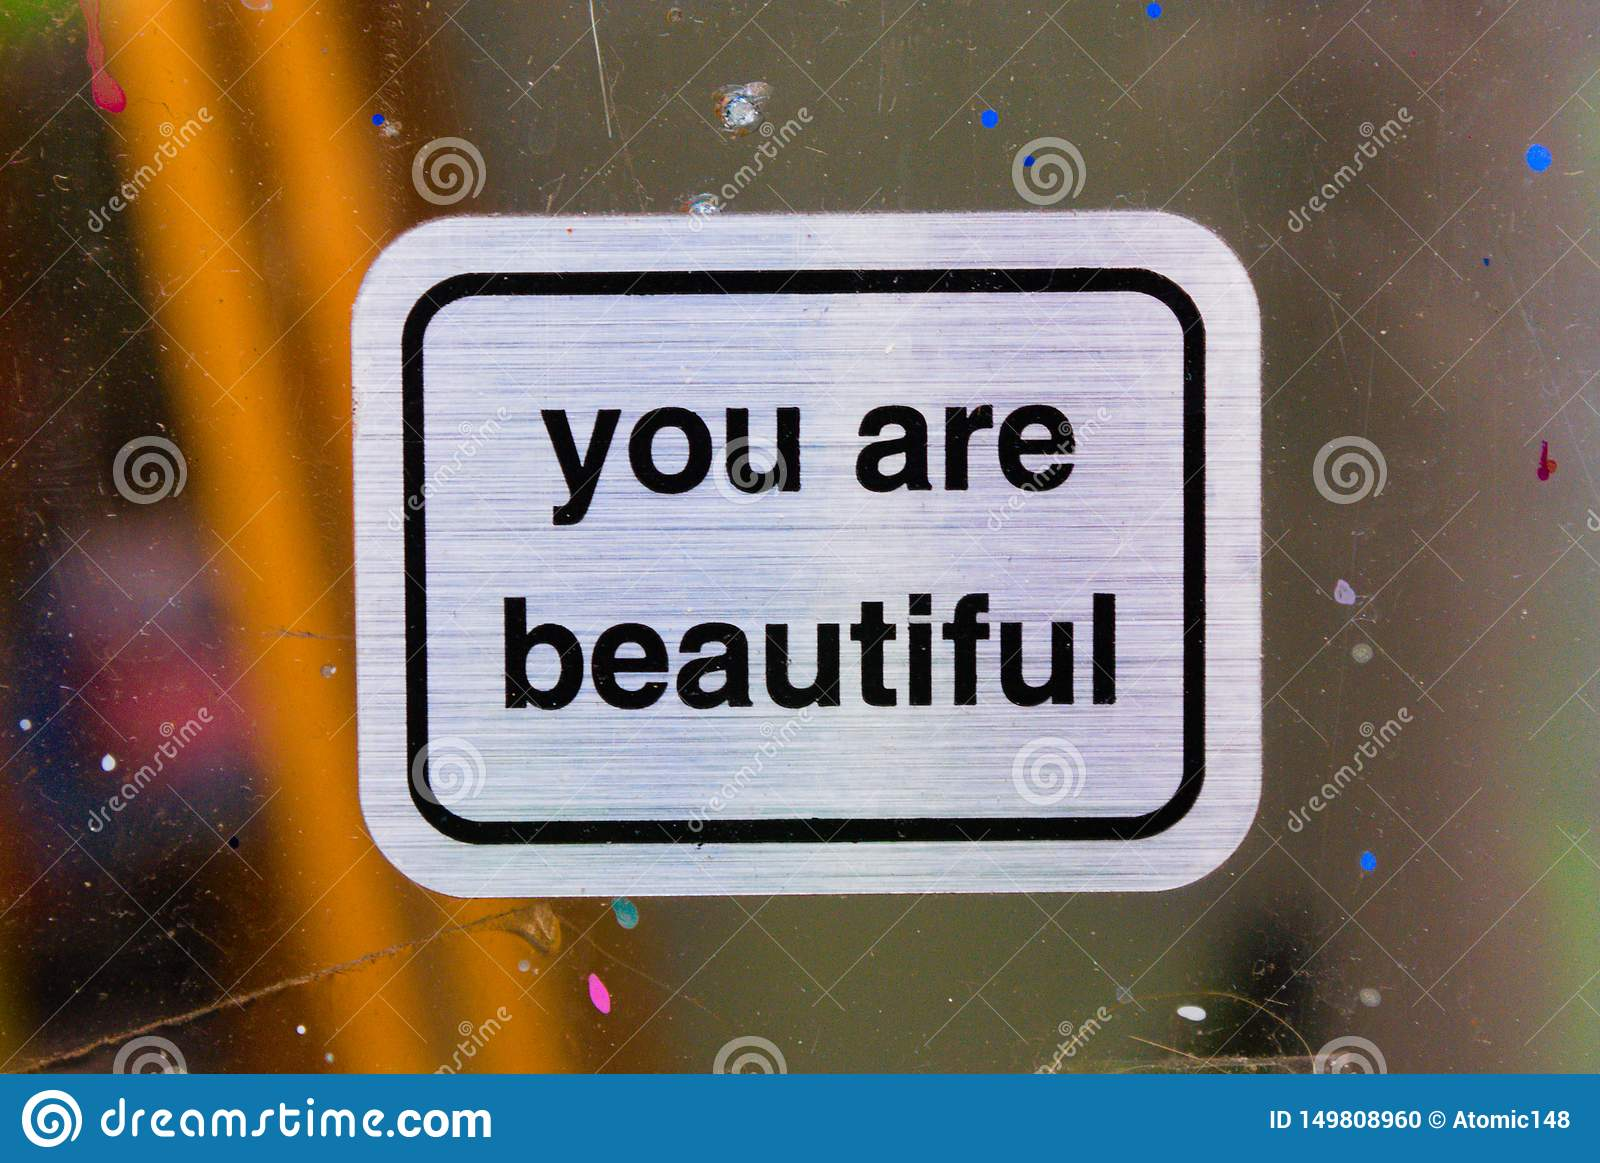 You are beautiful signs